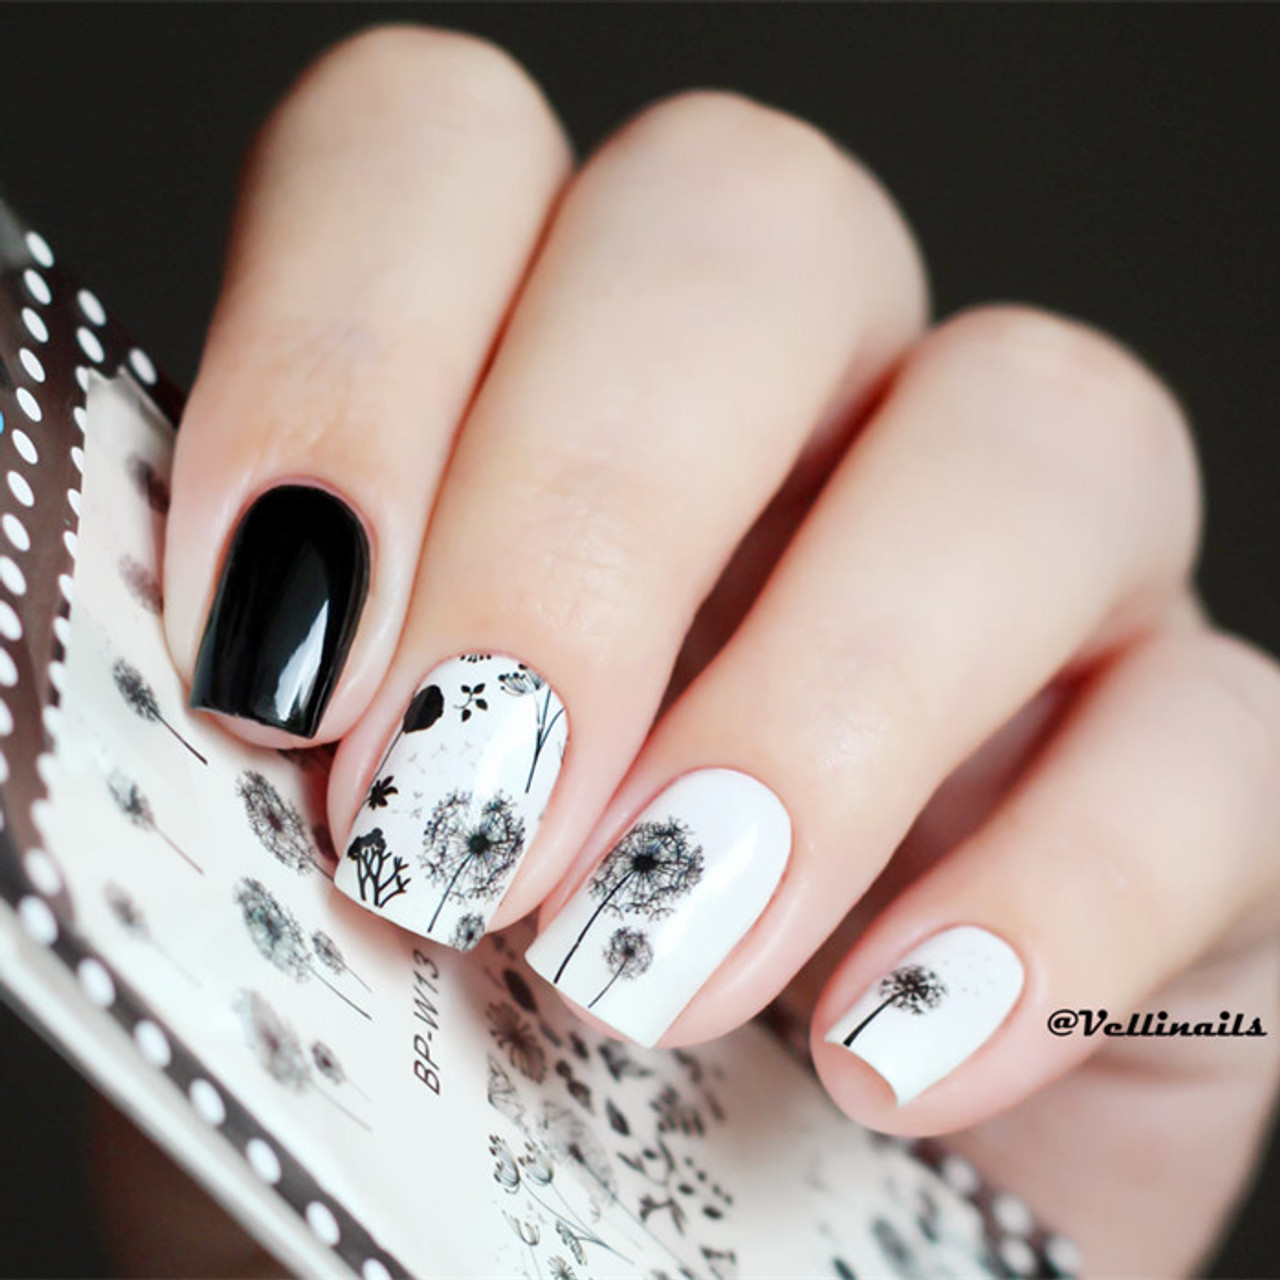 Flying Dandelion Nail Art Decal Stickers - Fashion Mouse